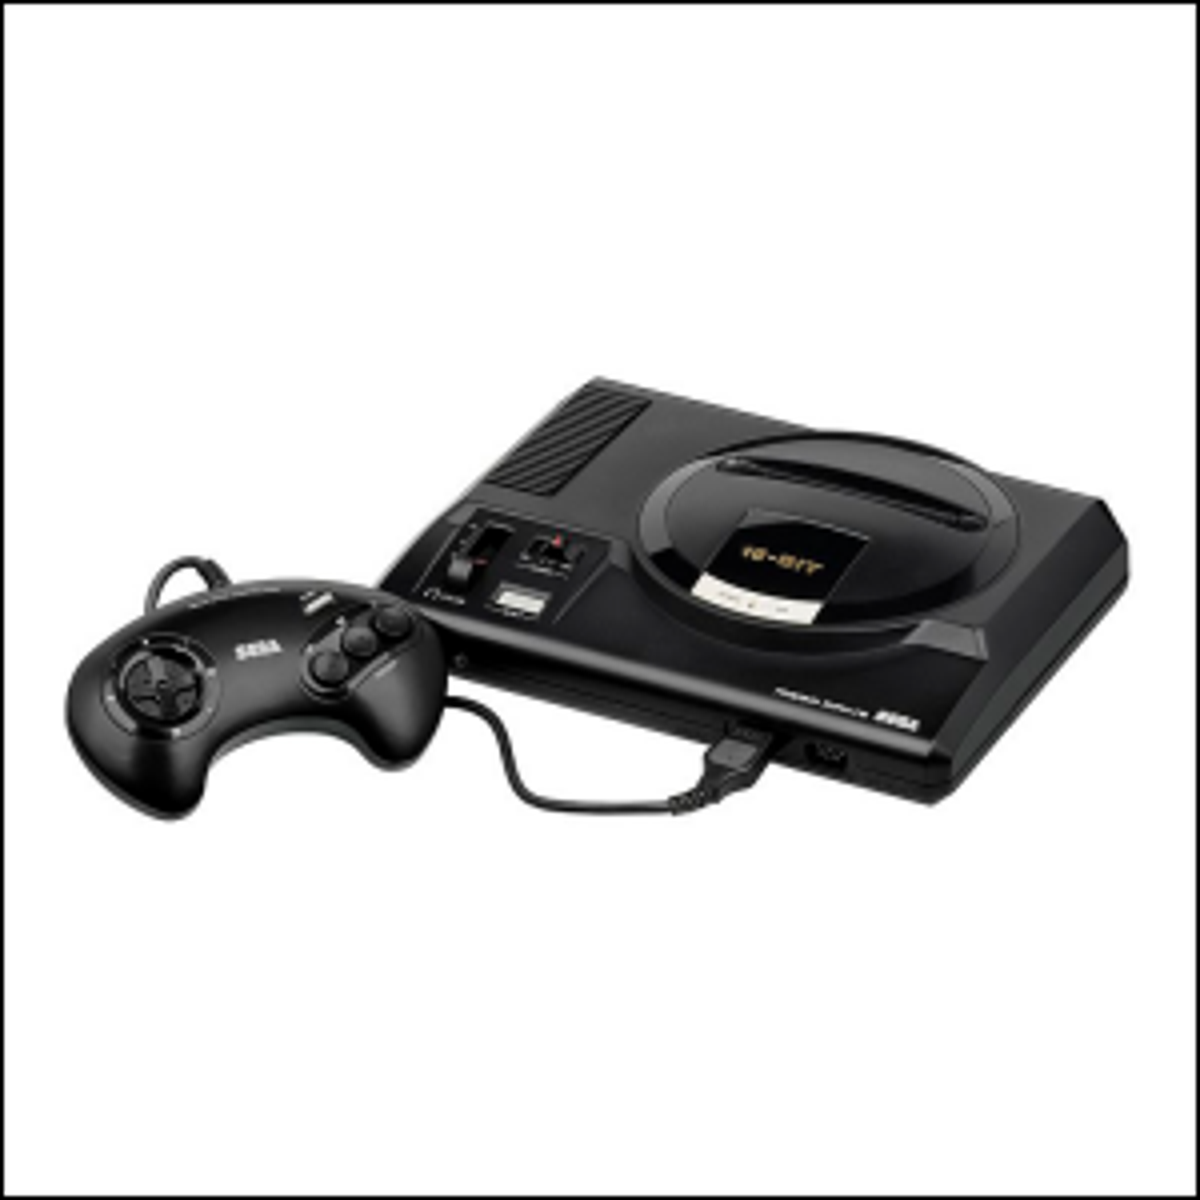 A photo of the European PAL version of the Mega Drive launched in 1990.